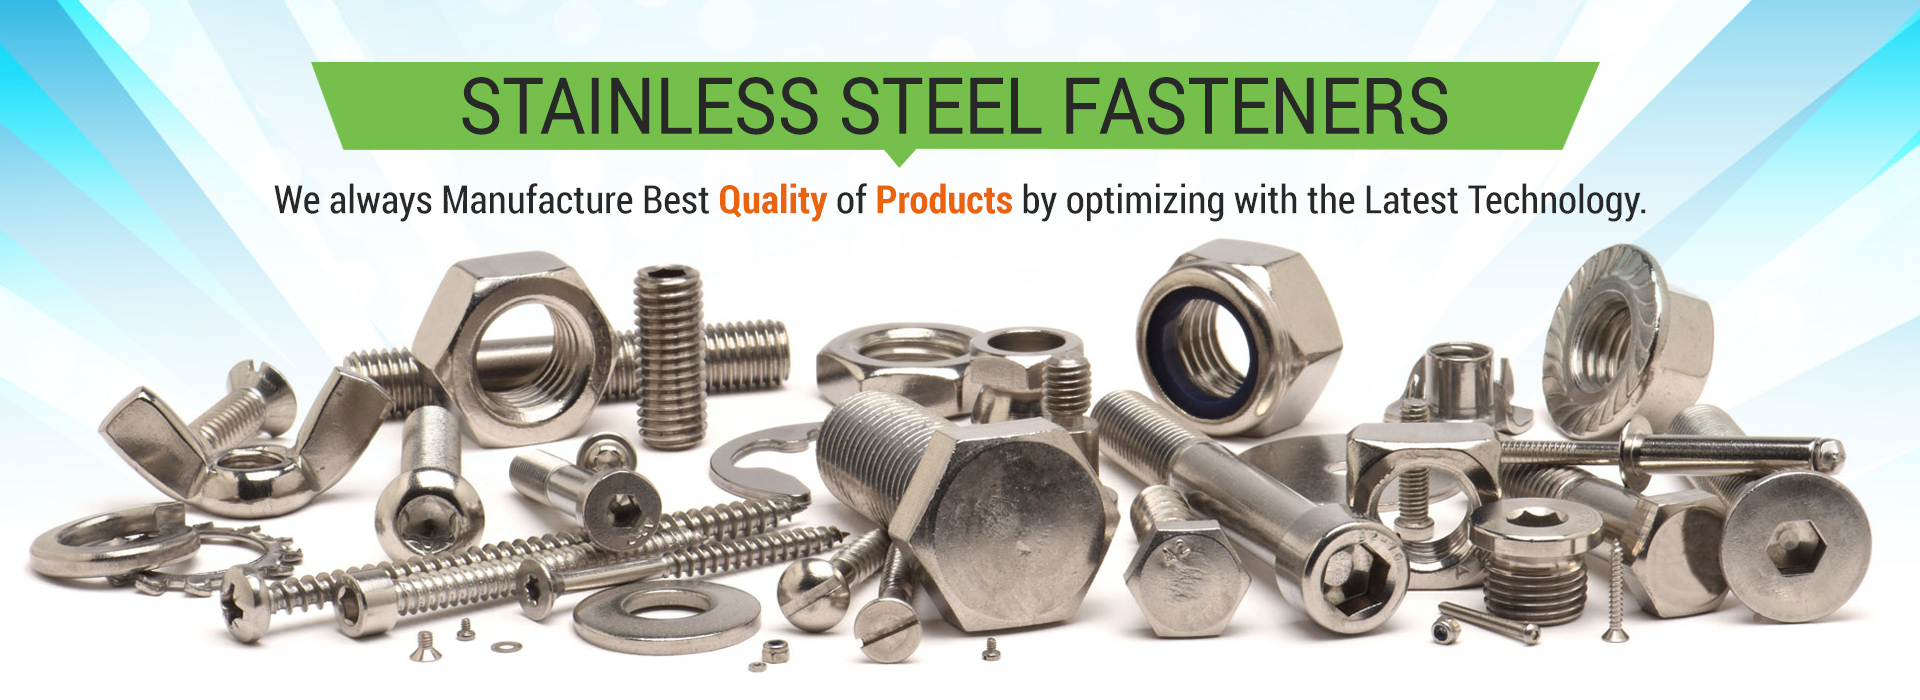 Manufacturer of Stainless Steel Fasteners